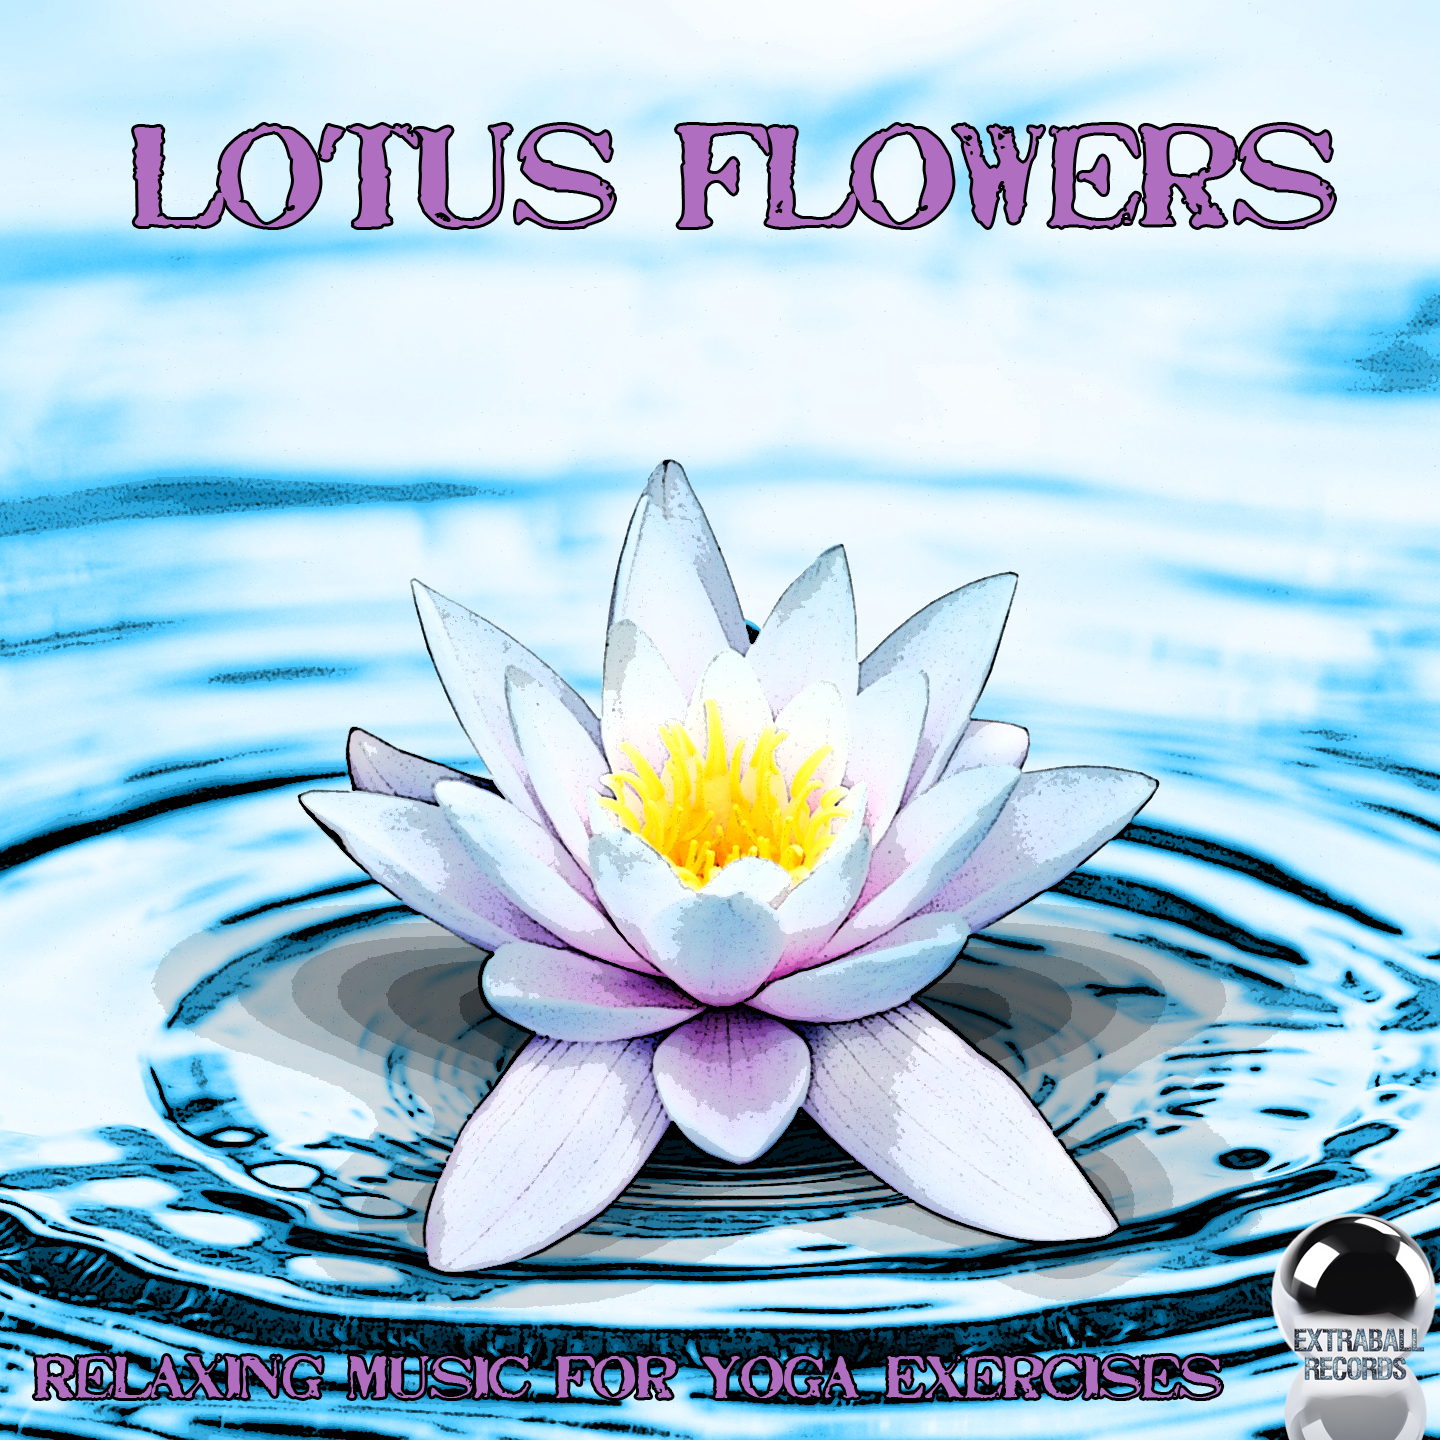 Xbr 904 Lotus Flowers Relaxing Music For Yoga Exercises